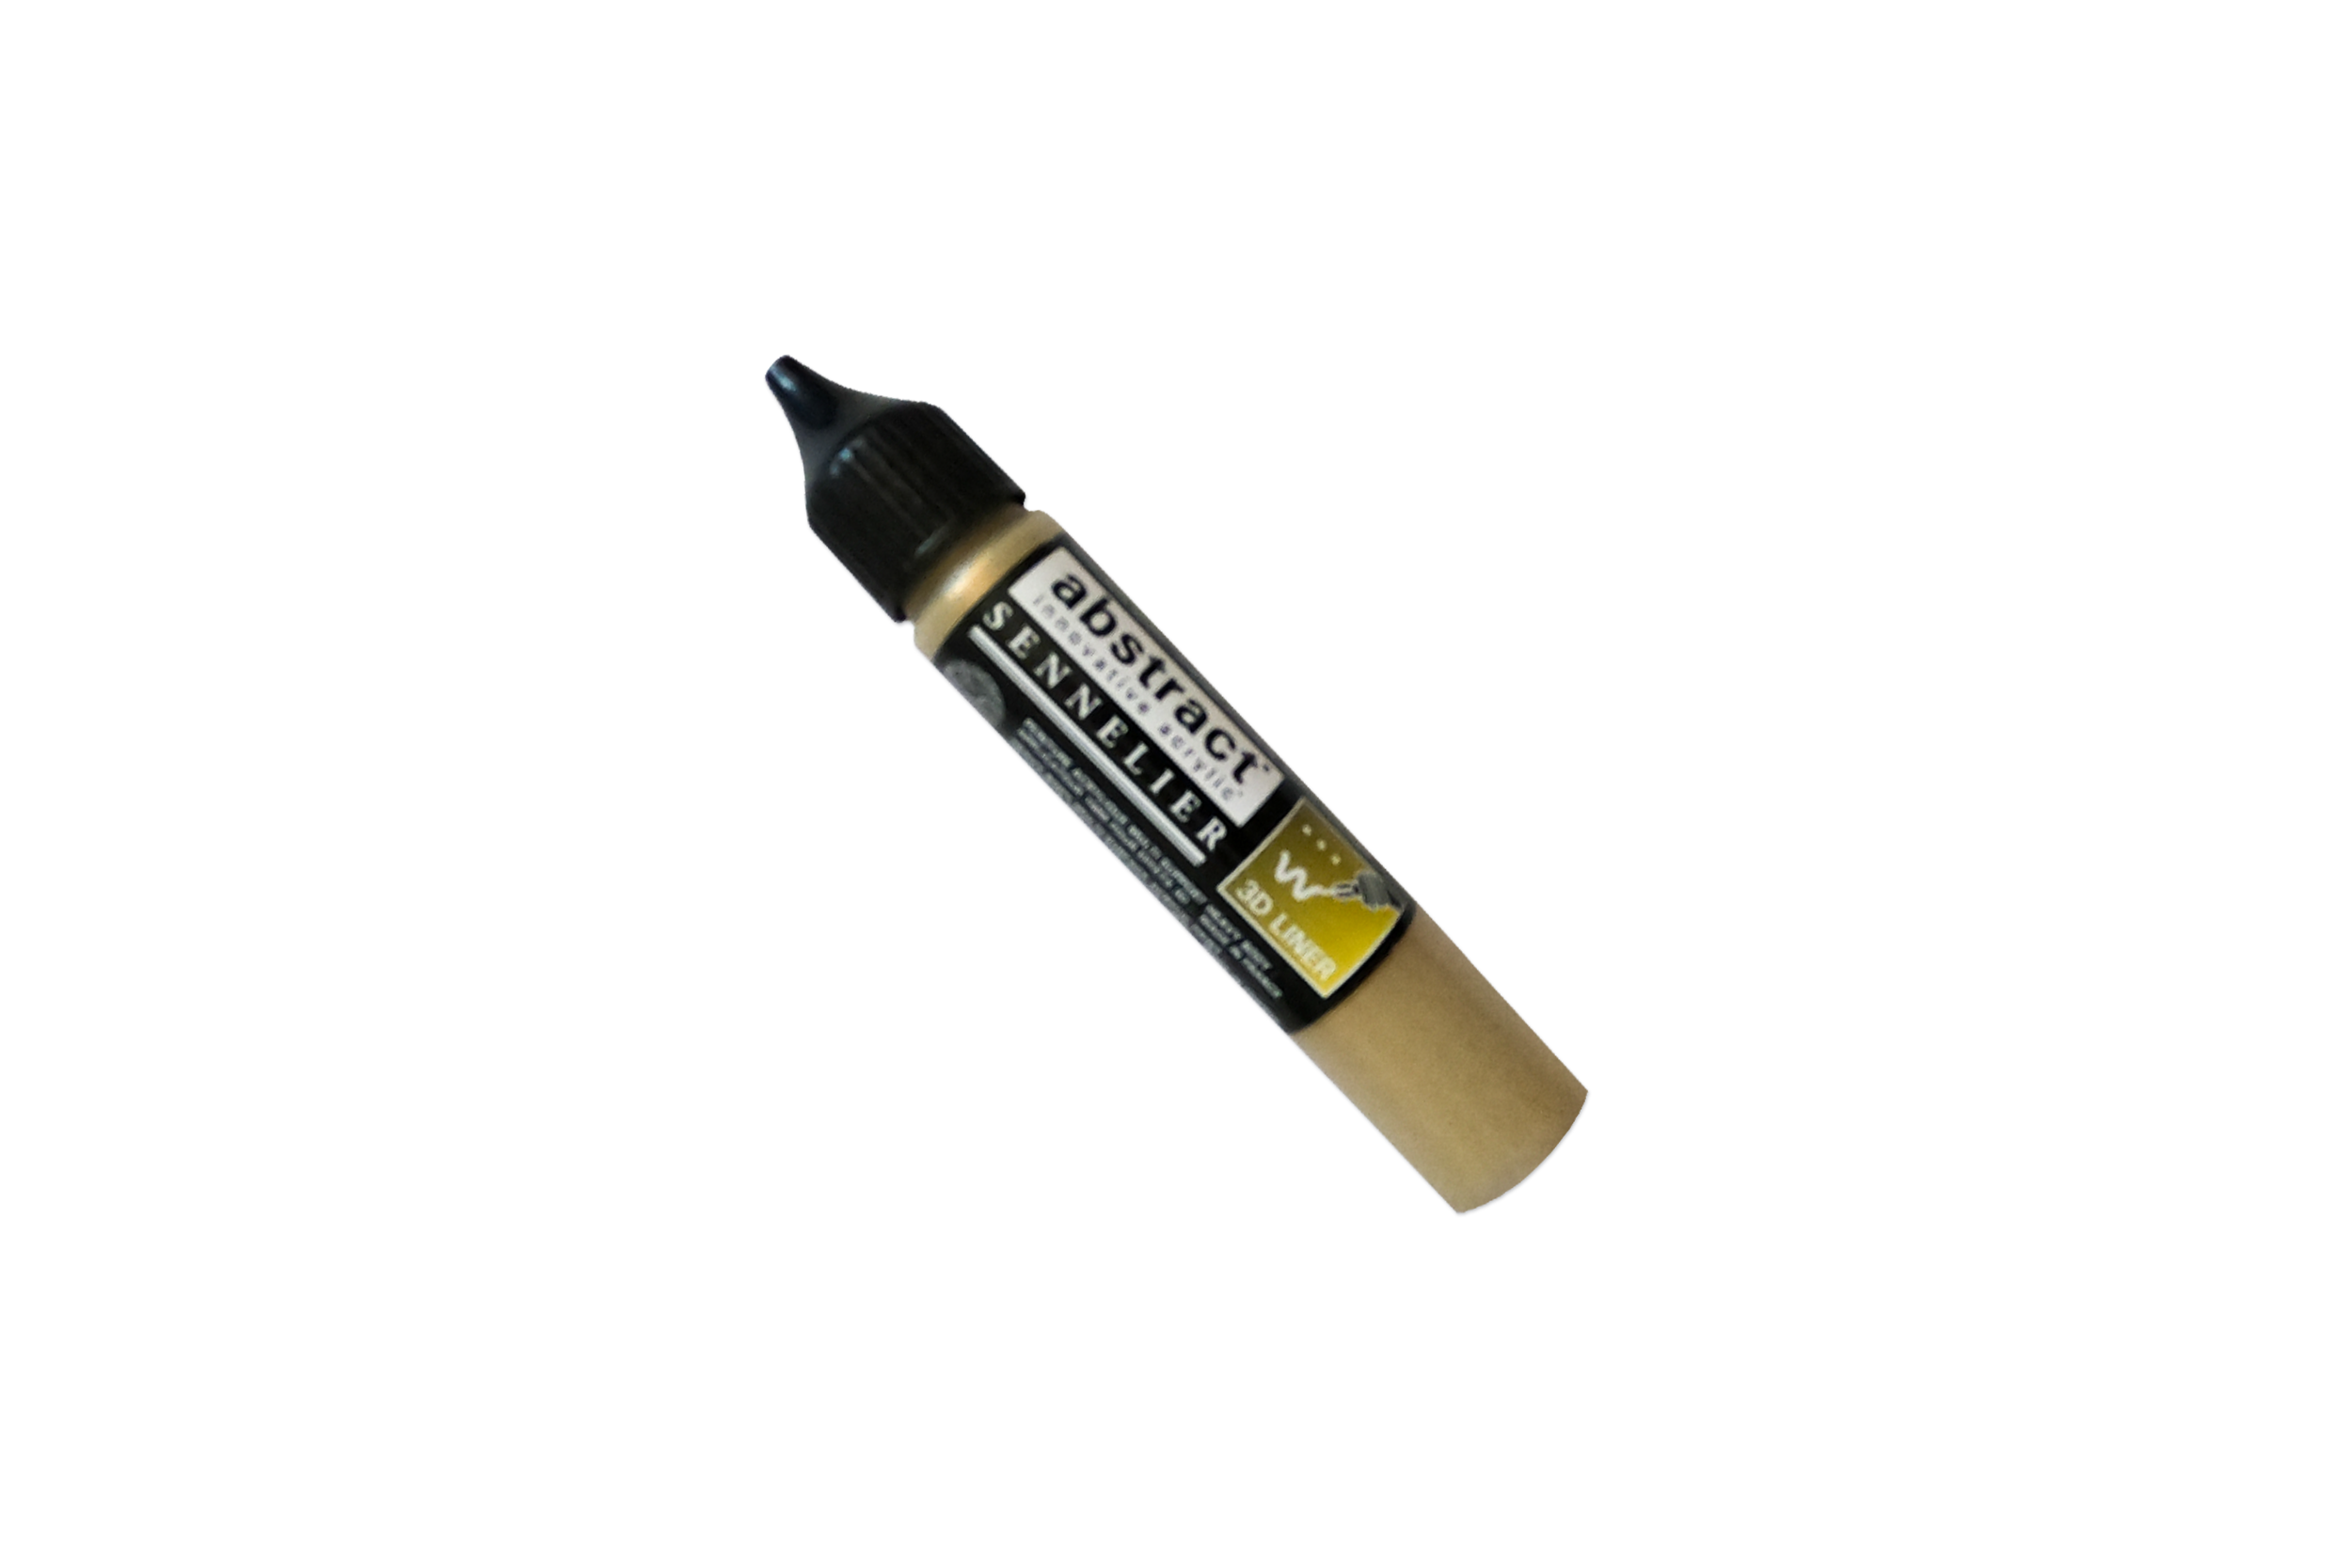 SENNELIER ABSTRACT LINER - IRIDESCENT GOLD